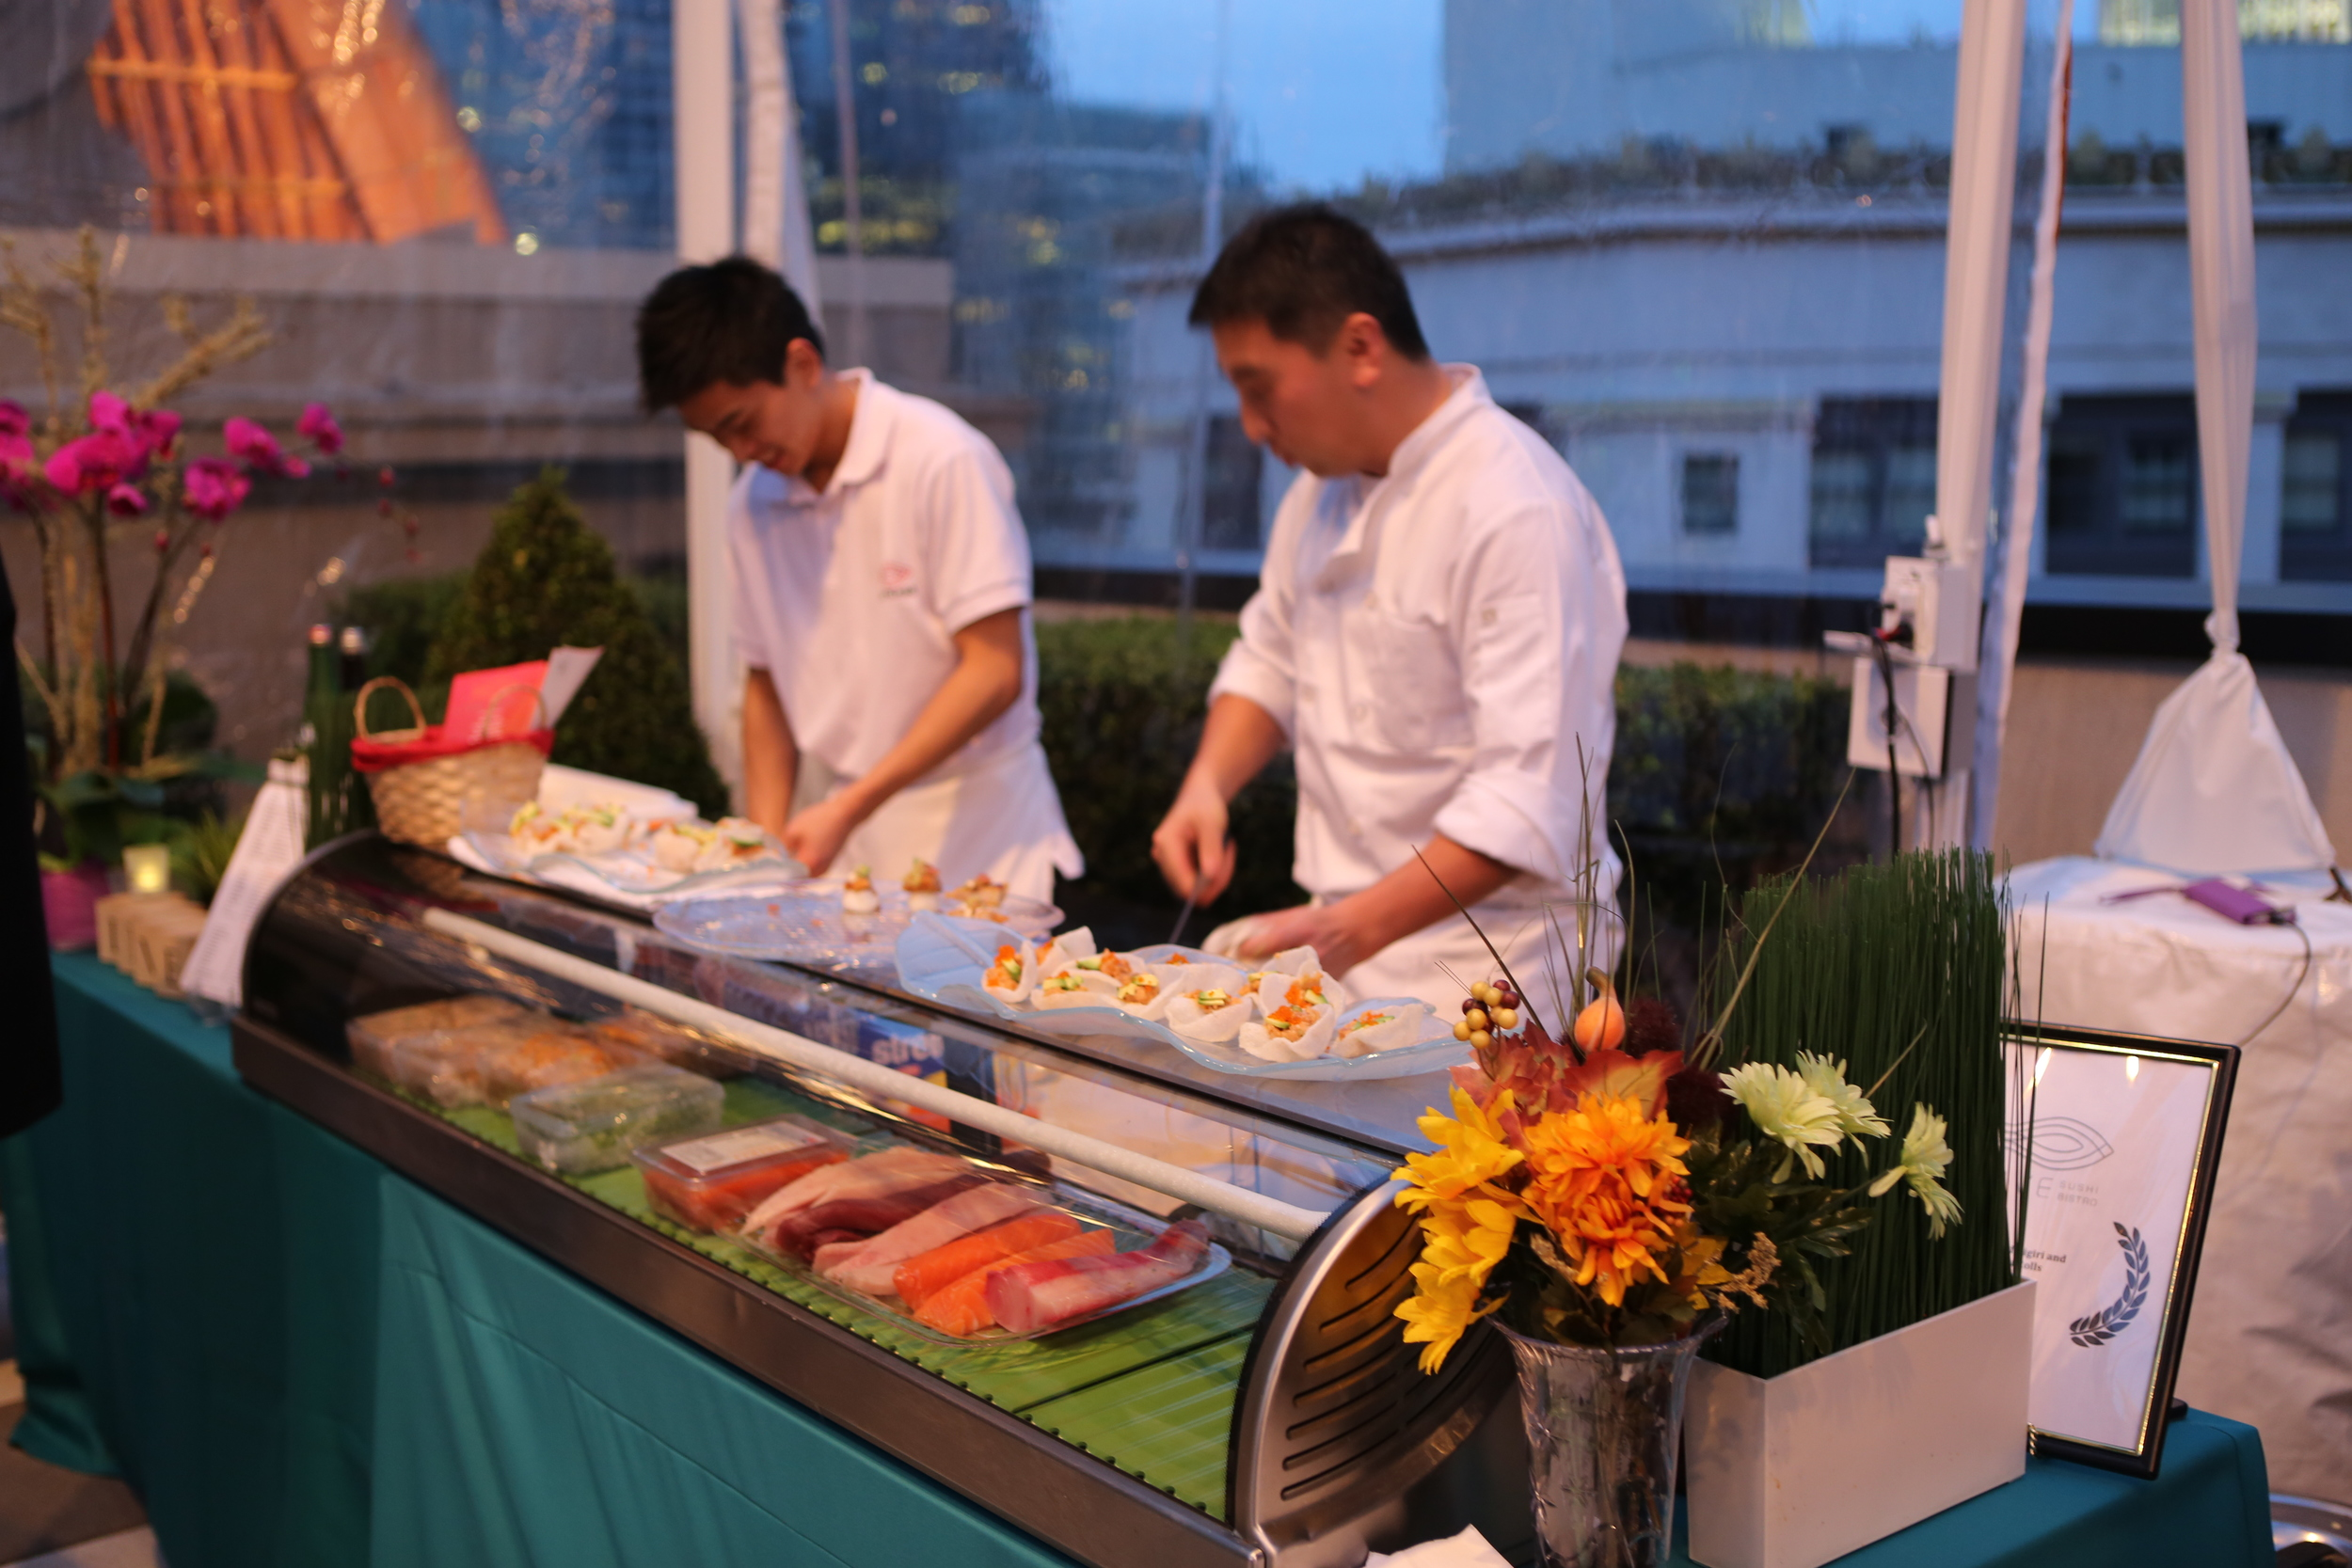 Live Sushi Chefs at a Mobile Sushi Bar